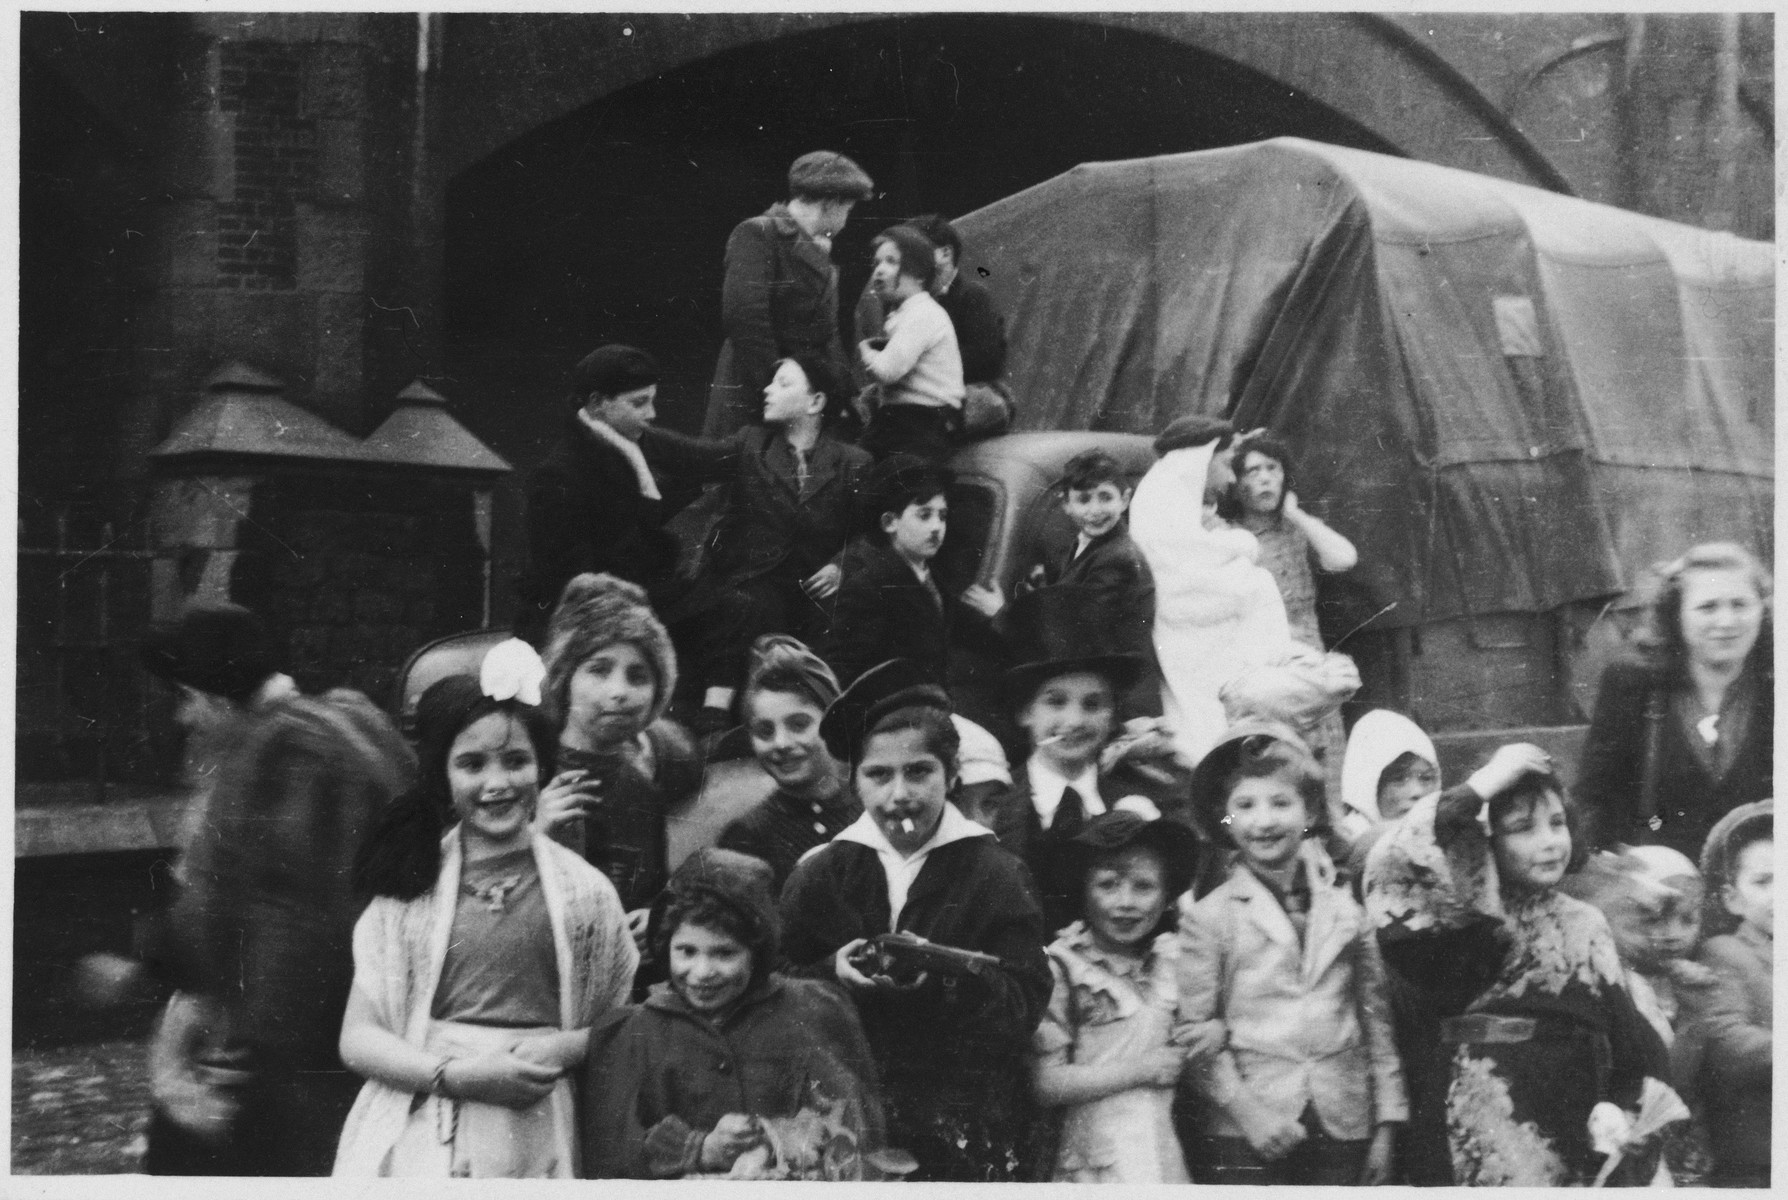 Jewish orphans, wearing costumes,  from a Tiefenbrunner children's home gather in front of a covered truck in Amseremme, Belgium.  On the right is Miriam Cenzer, one of the counselors.